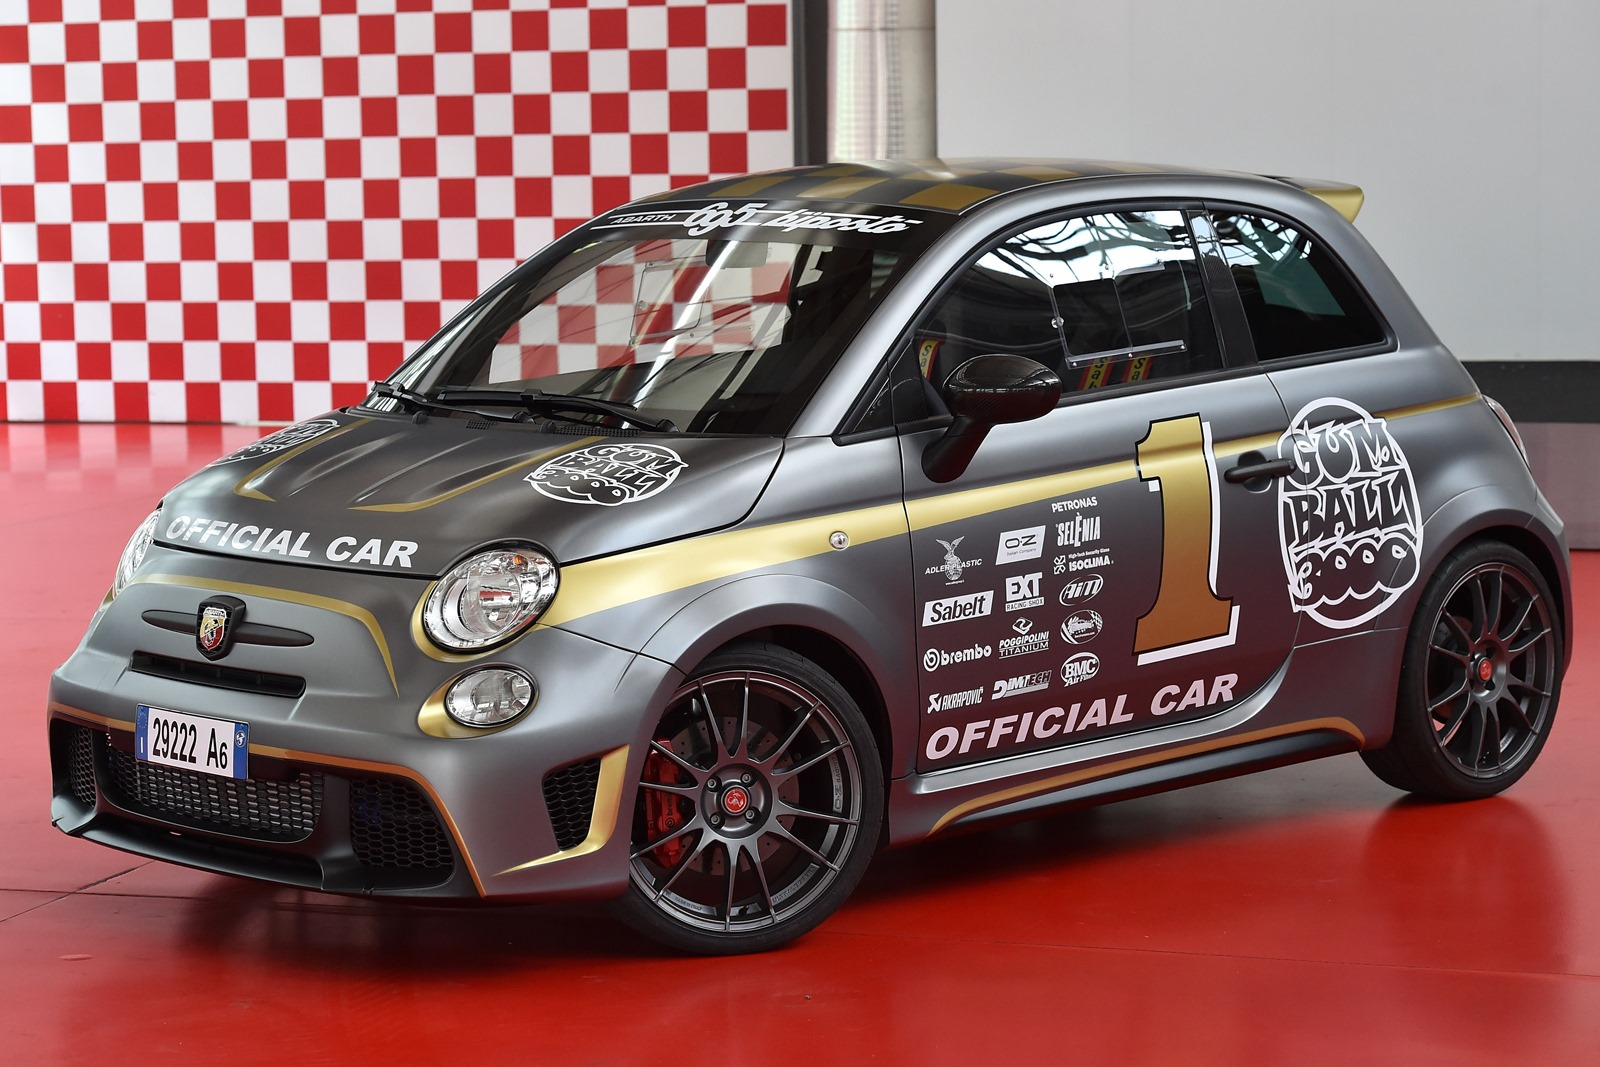 [Fiat] 500 Abarth - Page 13 Abarth-695-Biposto-Gumball-official-car-1%25255B4%25255D